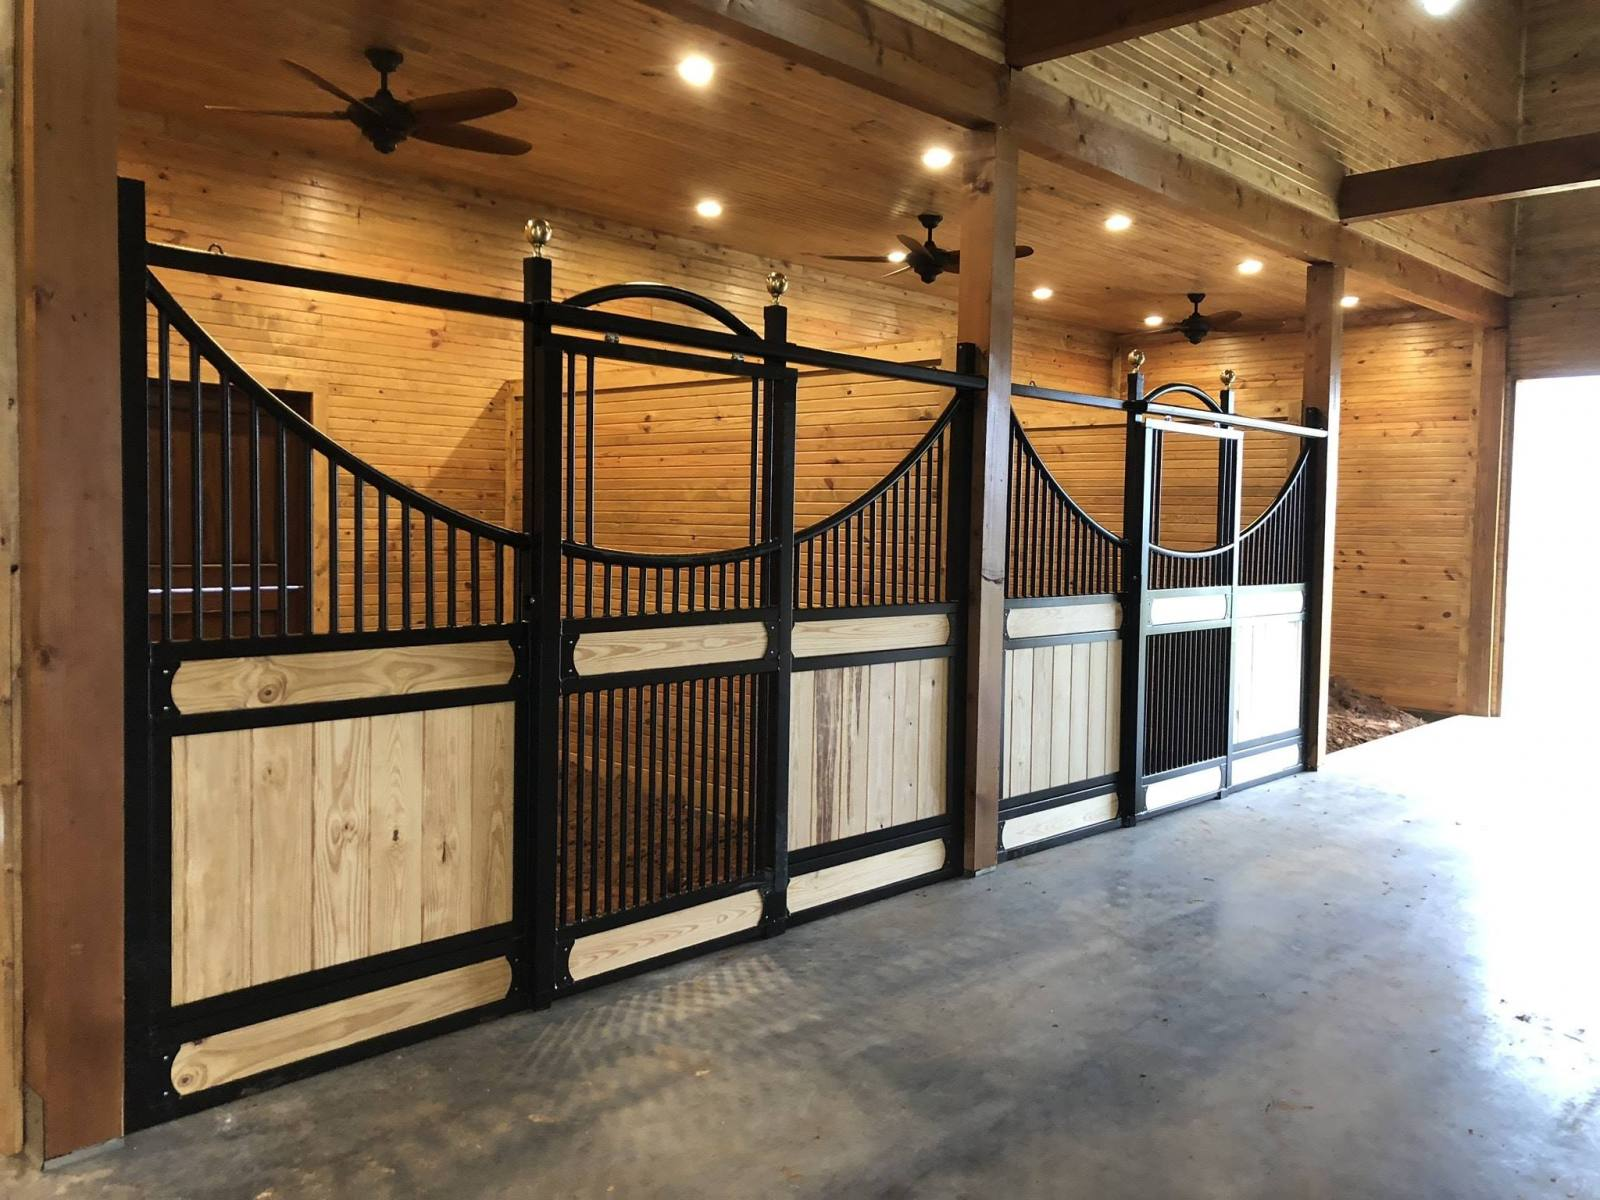 Stall Front No. 3A - European style full-grill sliding-door stall front with continuous arch, JR Elite wood load, and brass finials